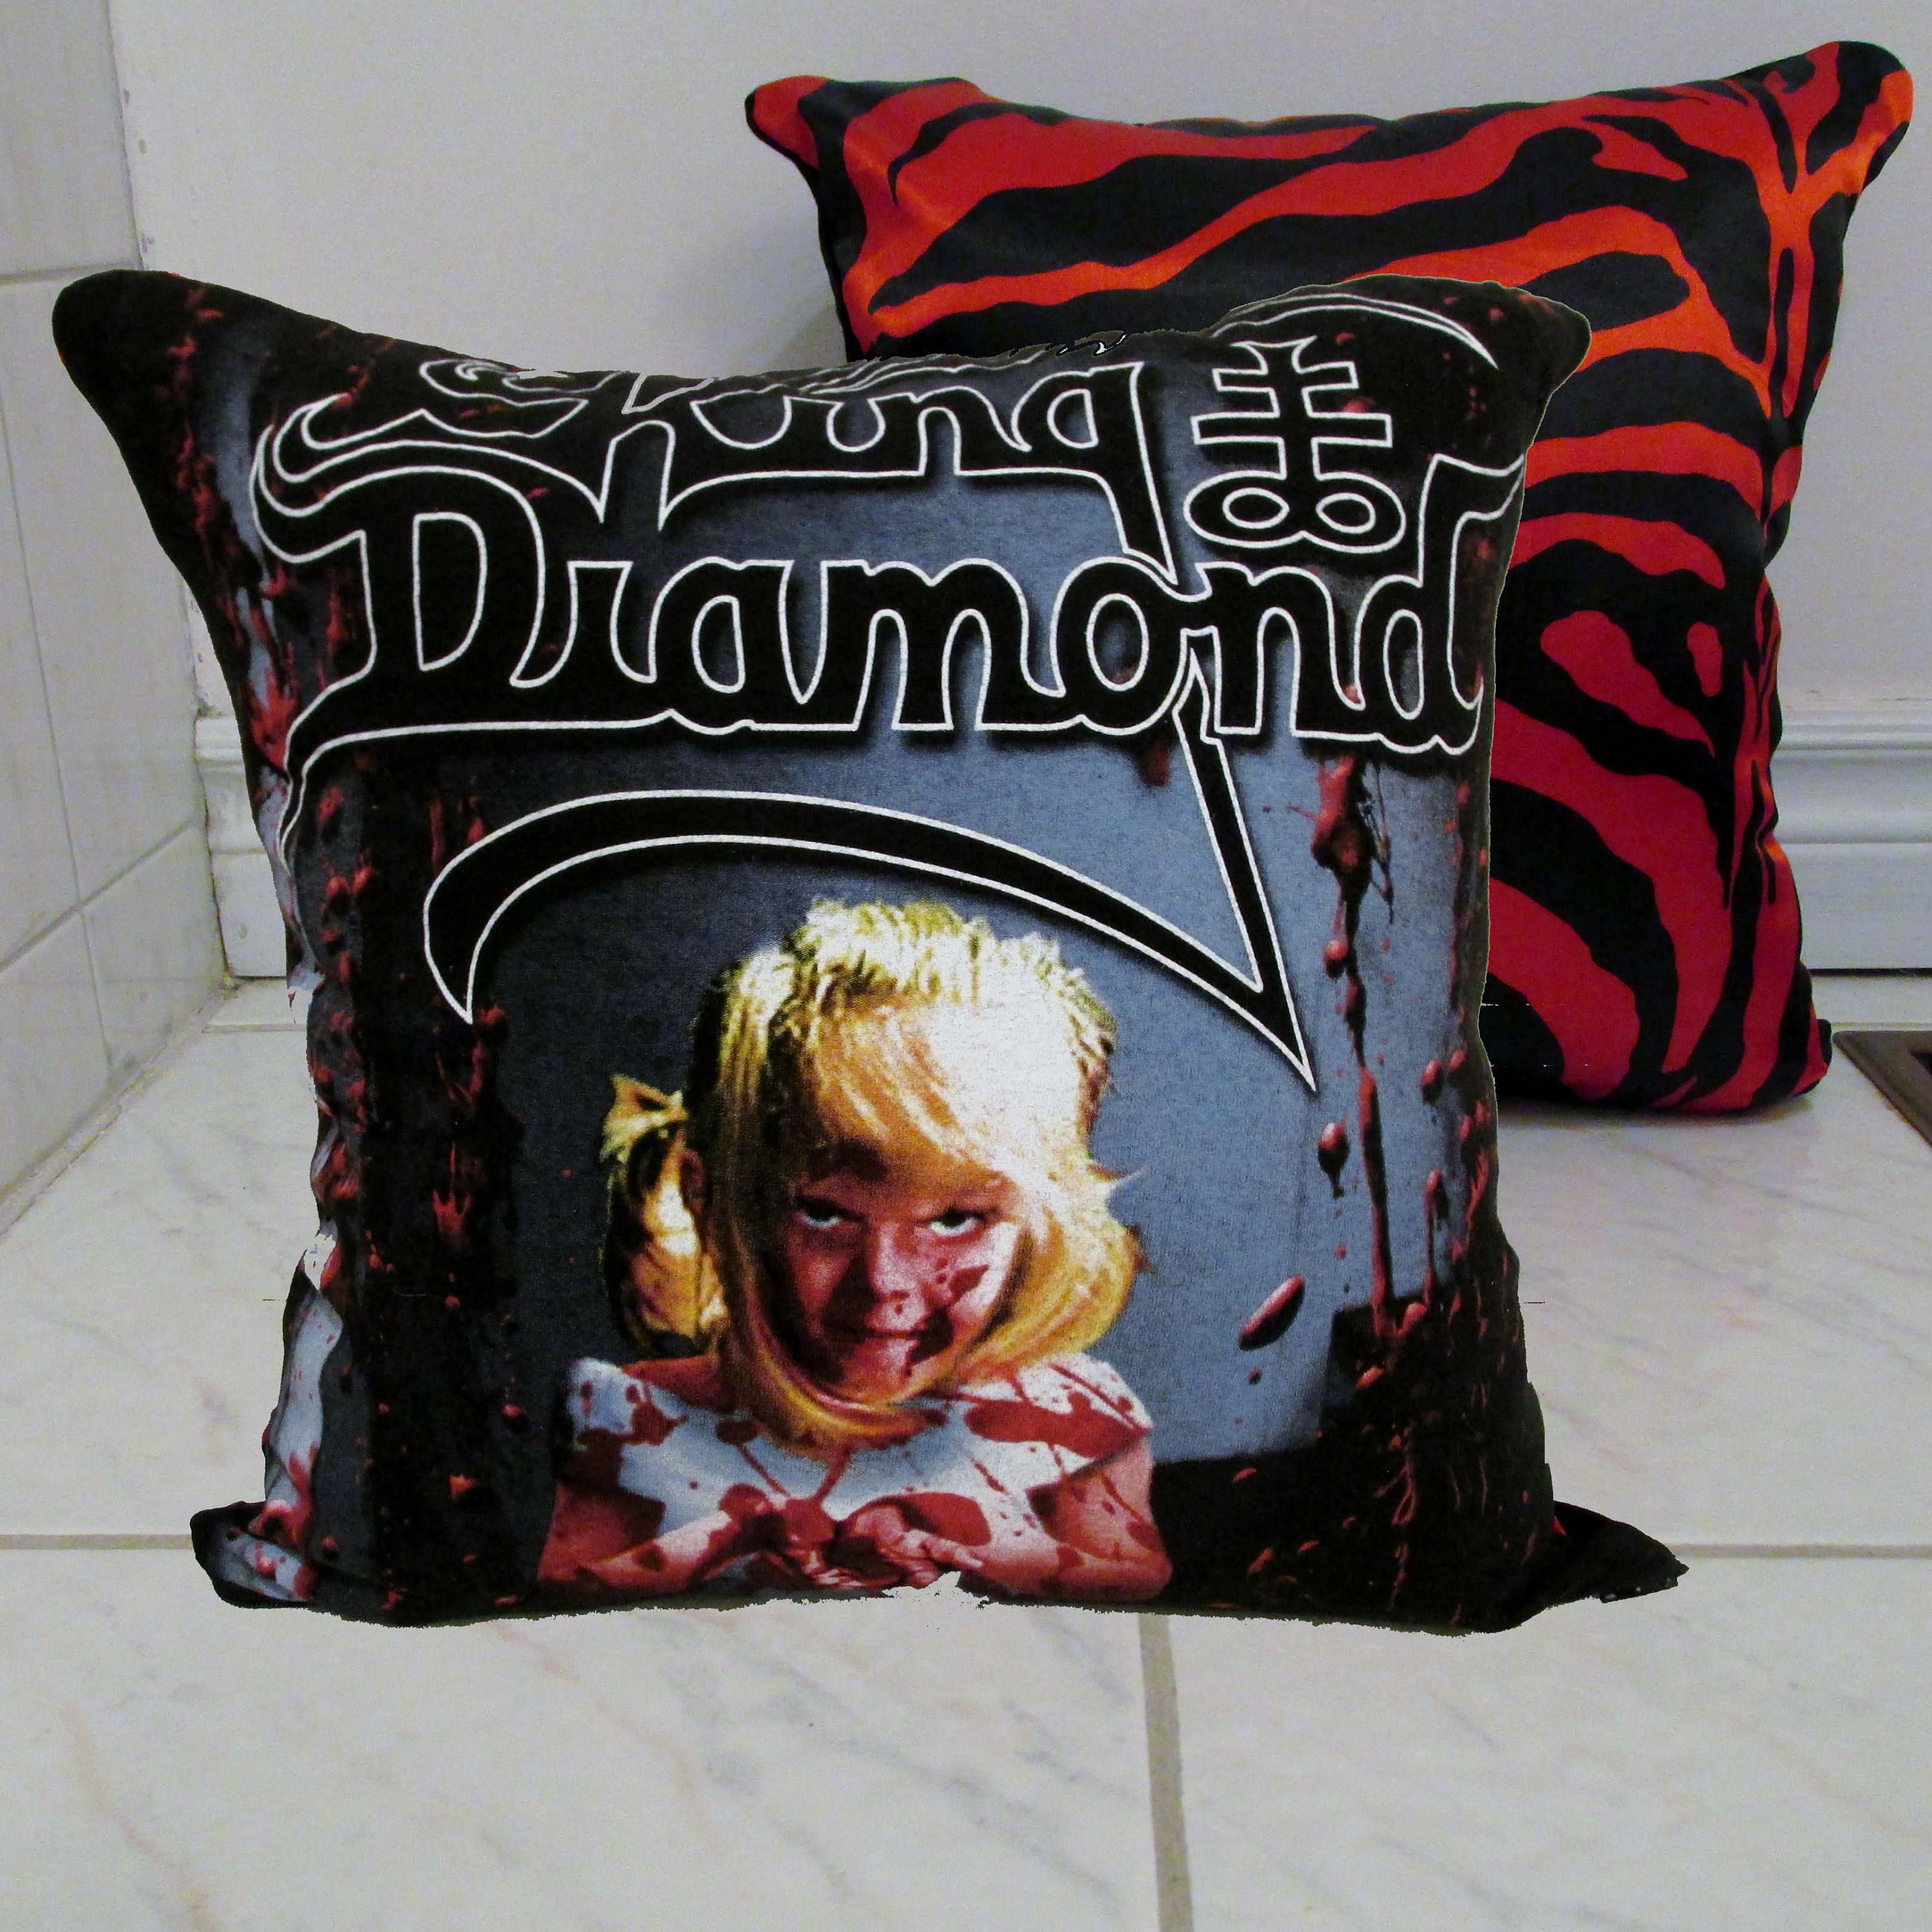 King Diamond Pillow Diy Heavy Metal Decor 4 Cover Or Full By Darkstormdesign